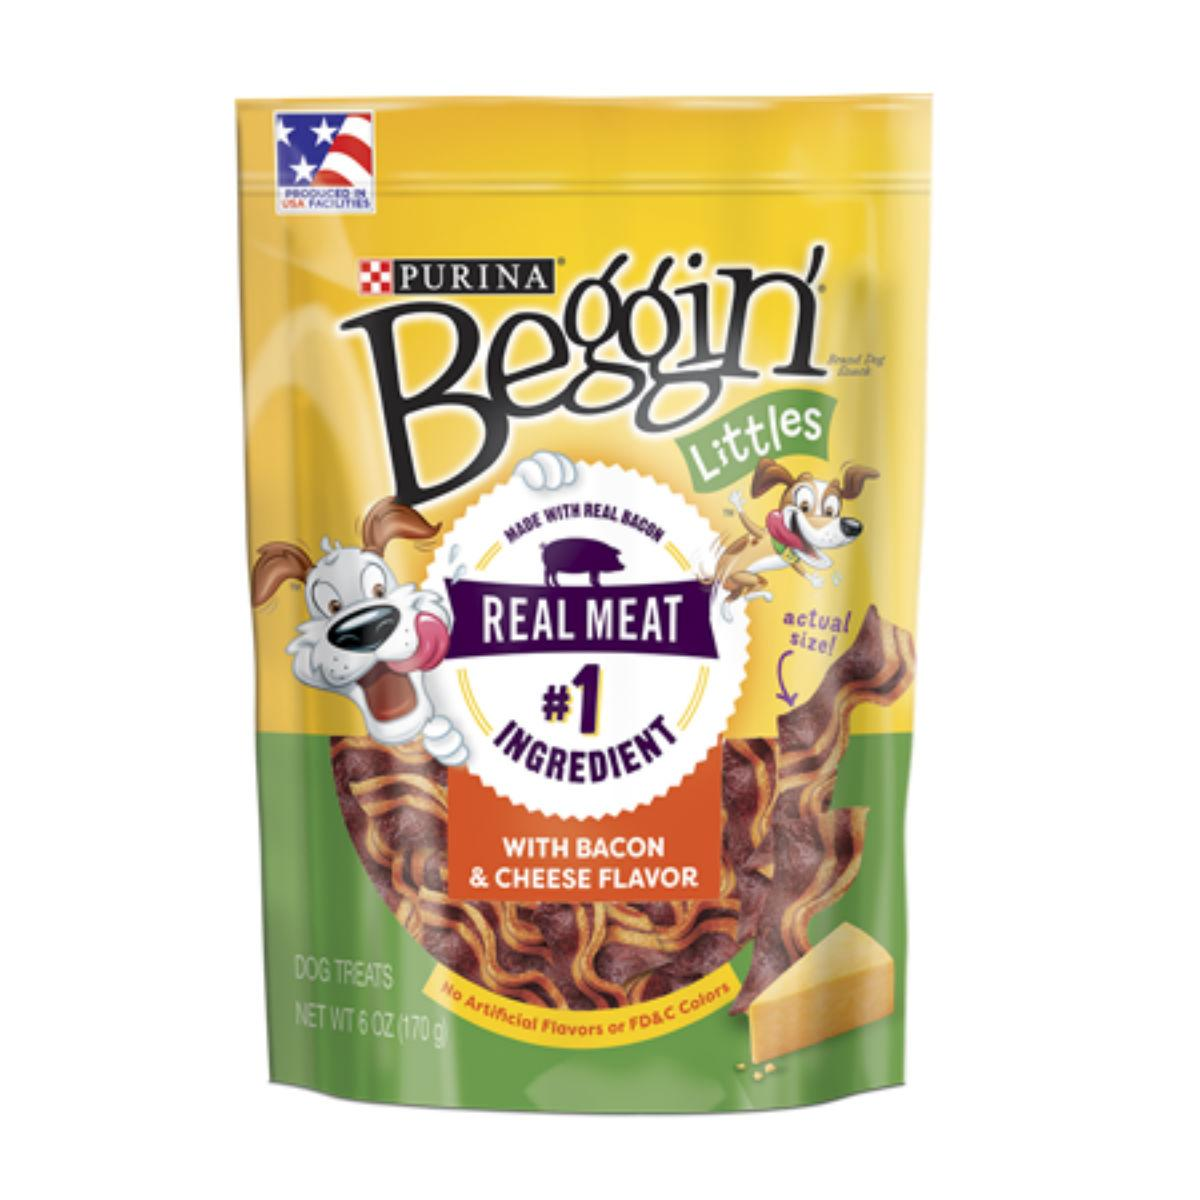 Purina Beggin Littles Dog Treat - Bacon and Cheese Flavor